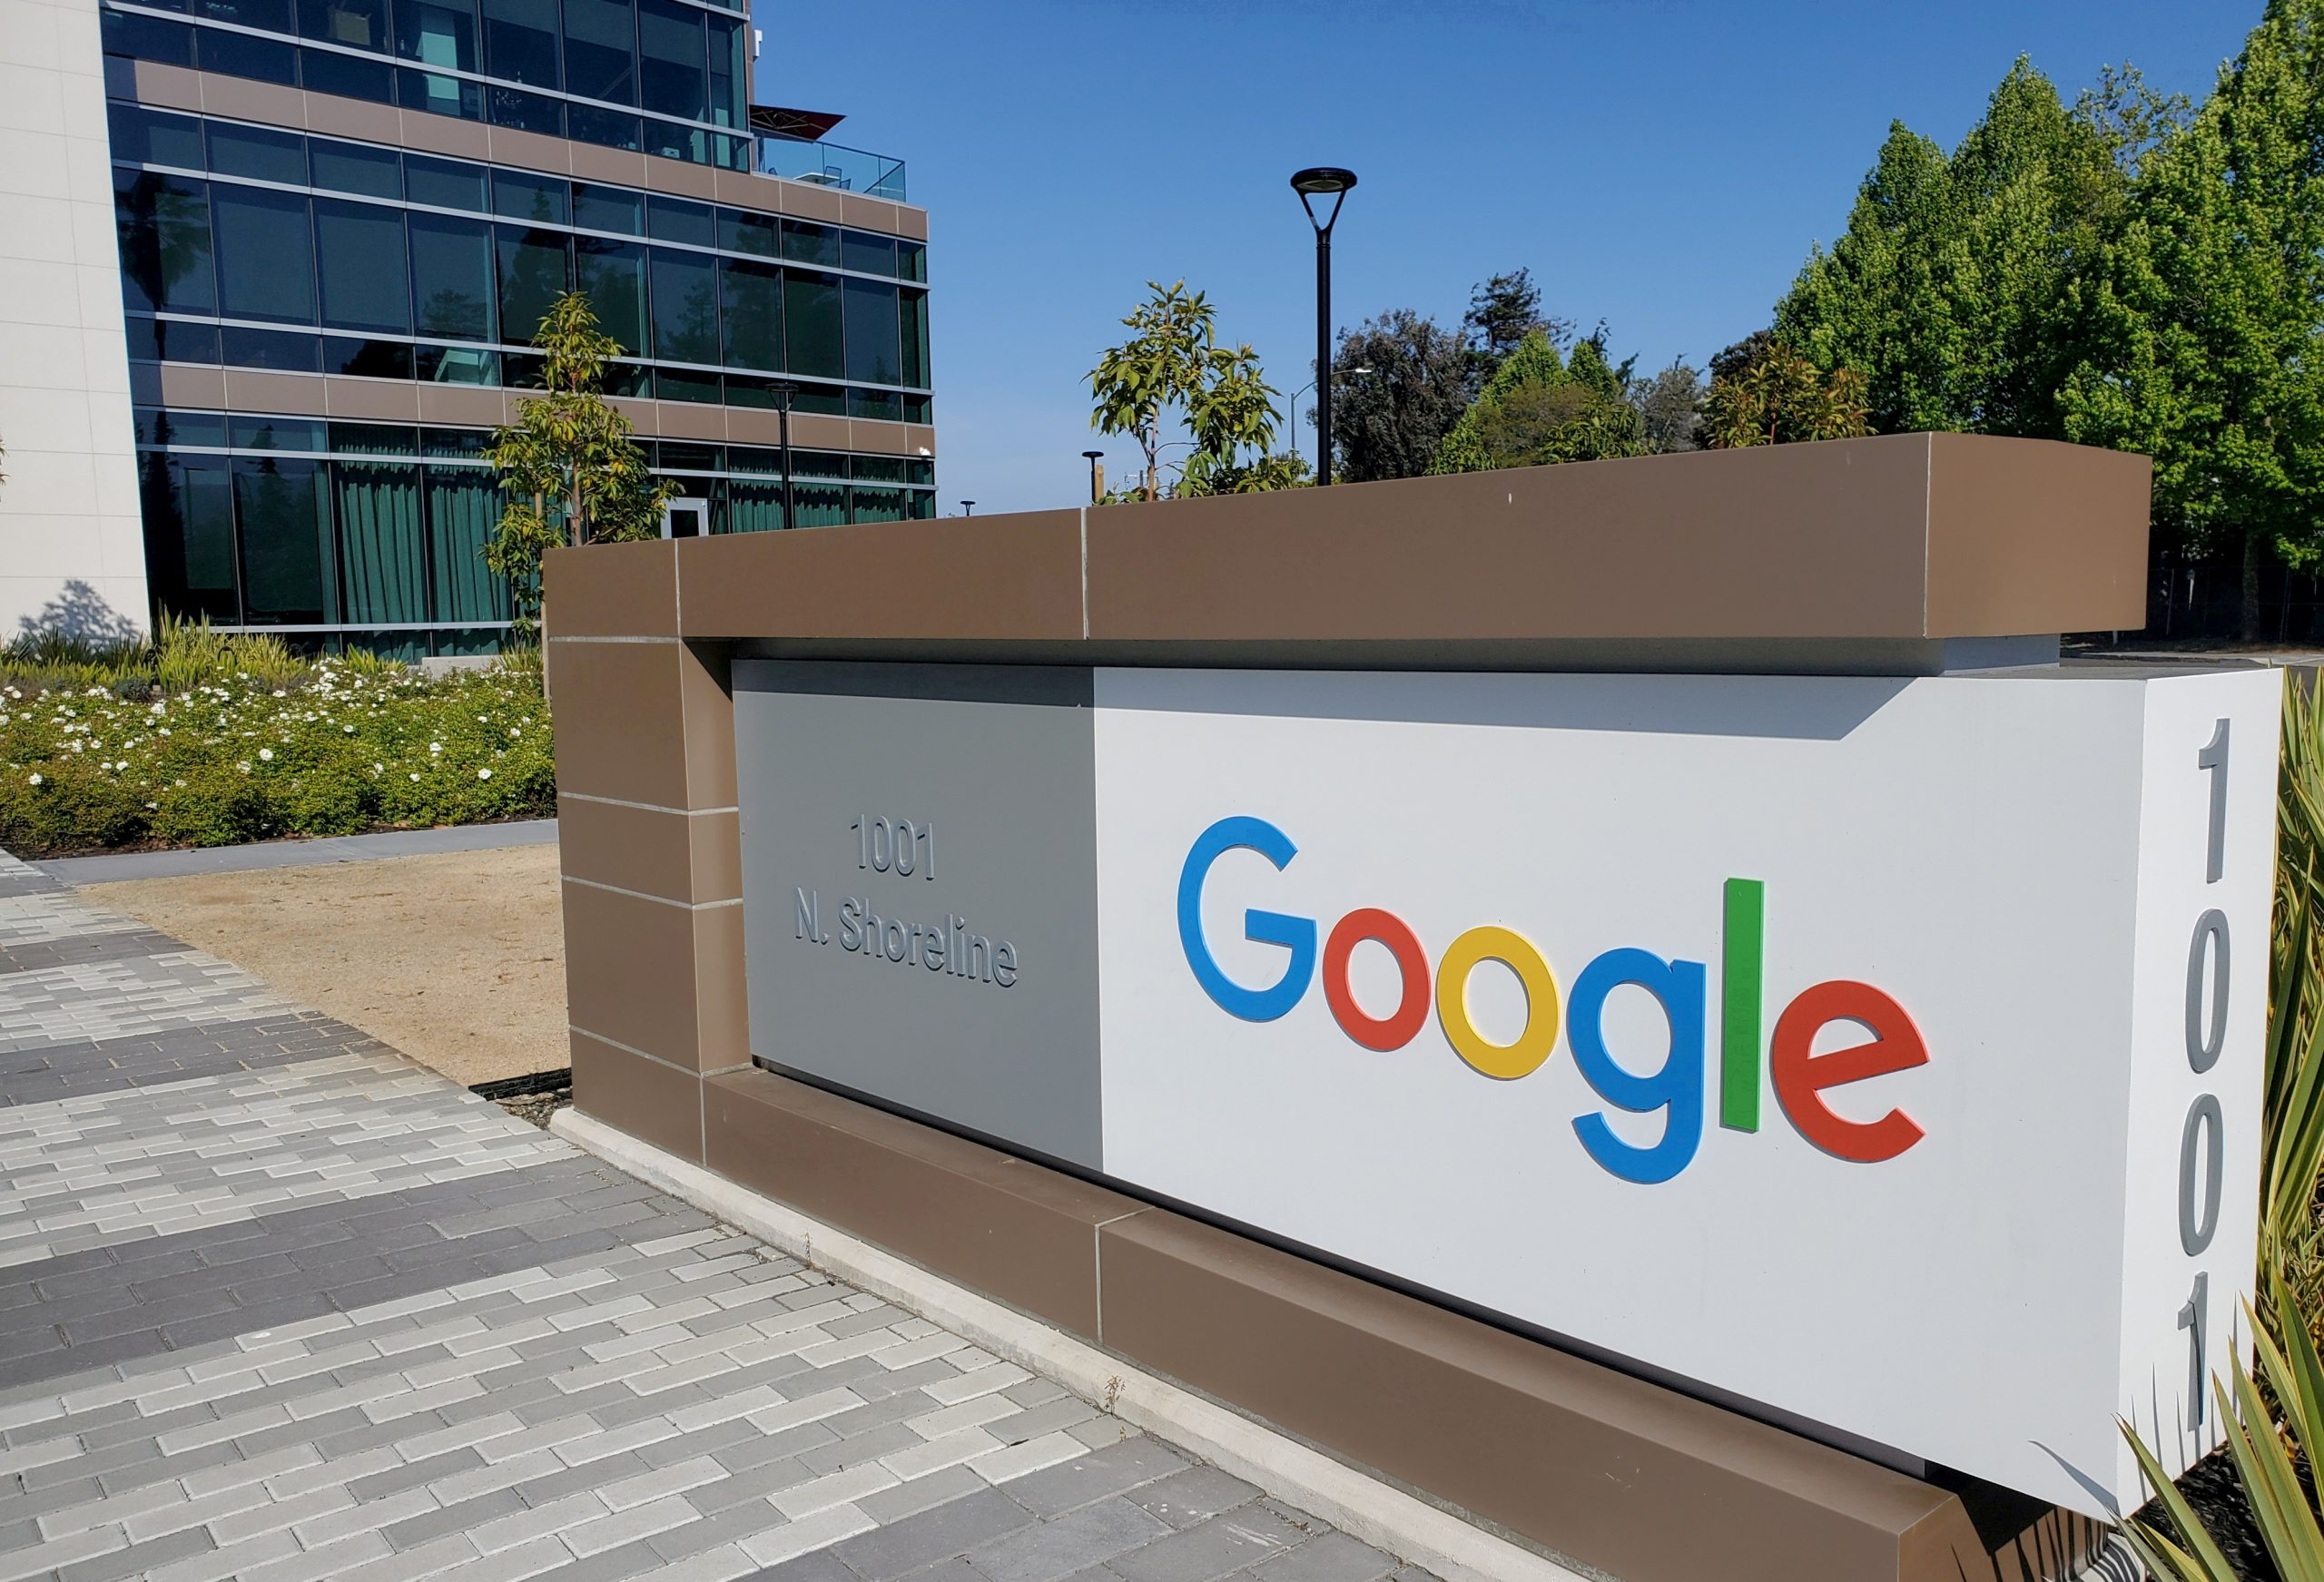 Google's new feature to reduce spreading rumors and misinformation